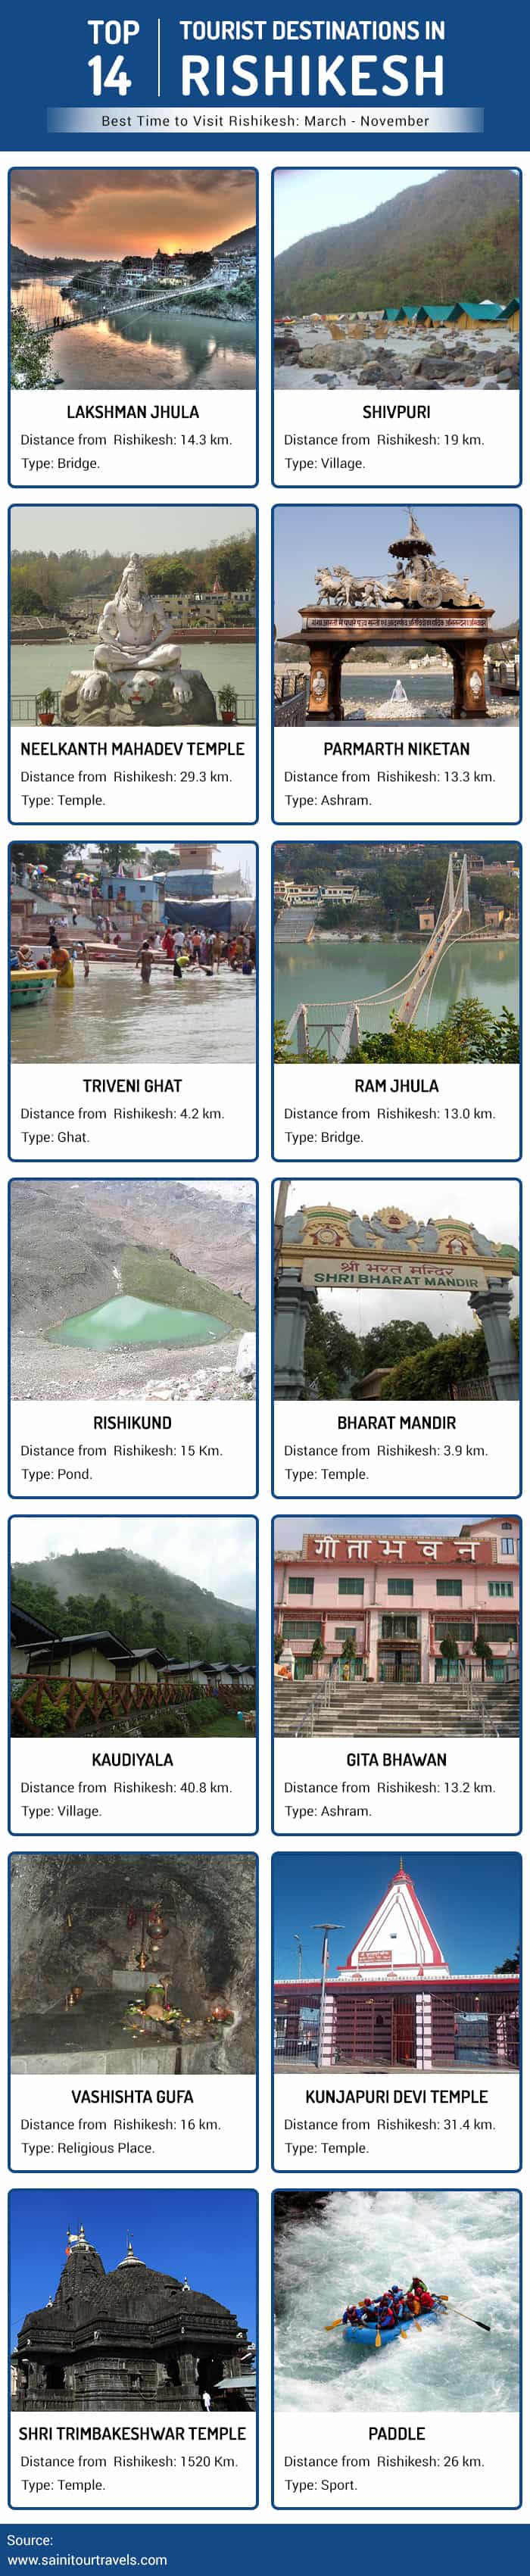 Top 14 Tourist Destinations in Rishikesh